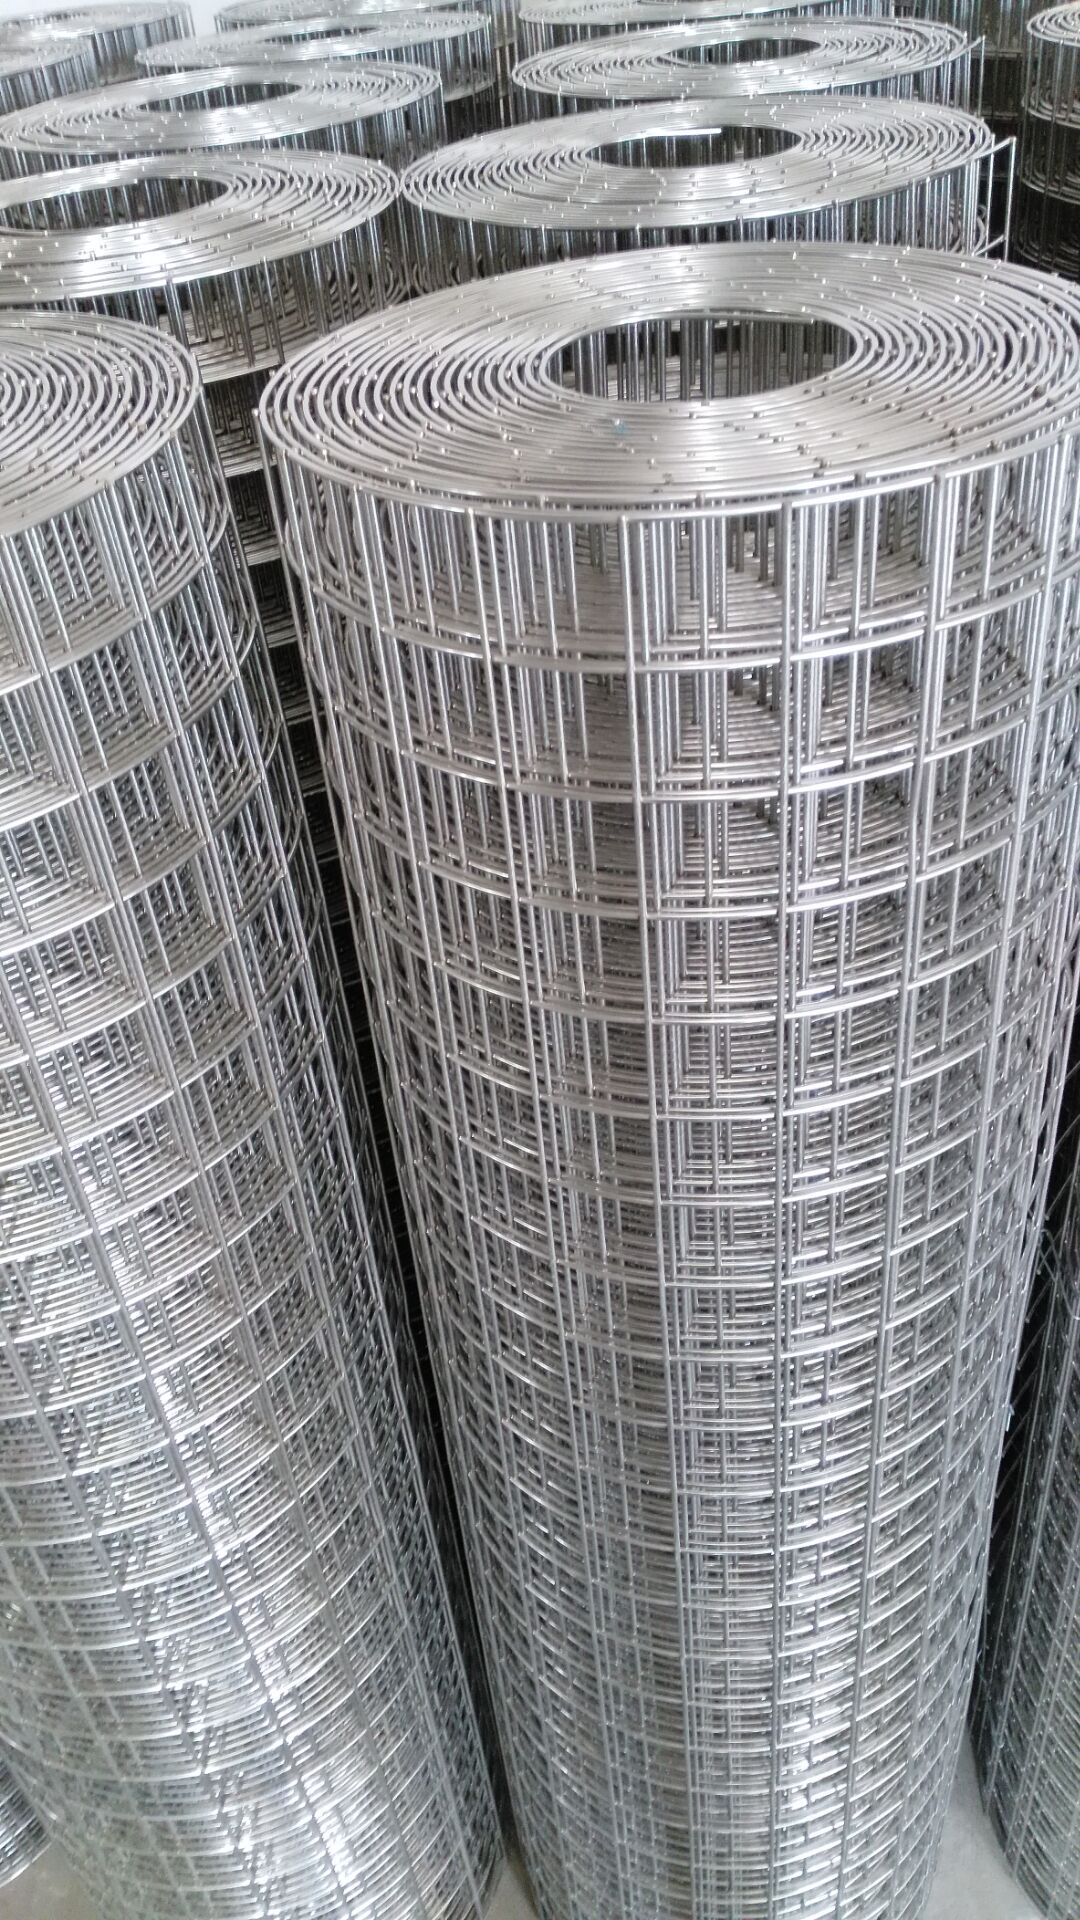 Welded Wire Mesh In 2020 Wire Mesh Stainless Steel Welding Stainless Steel Wire